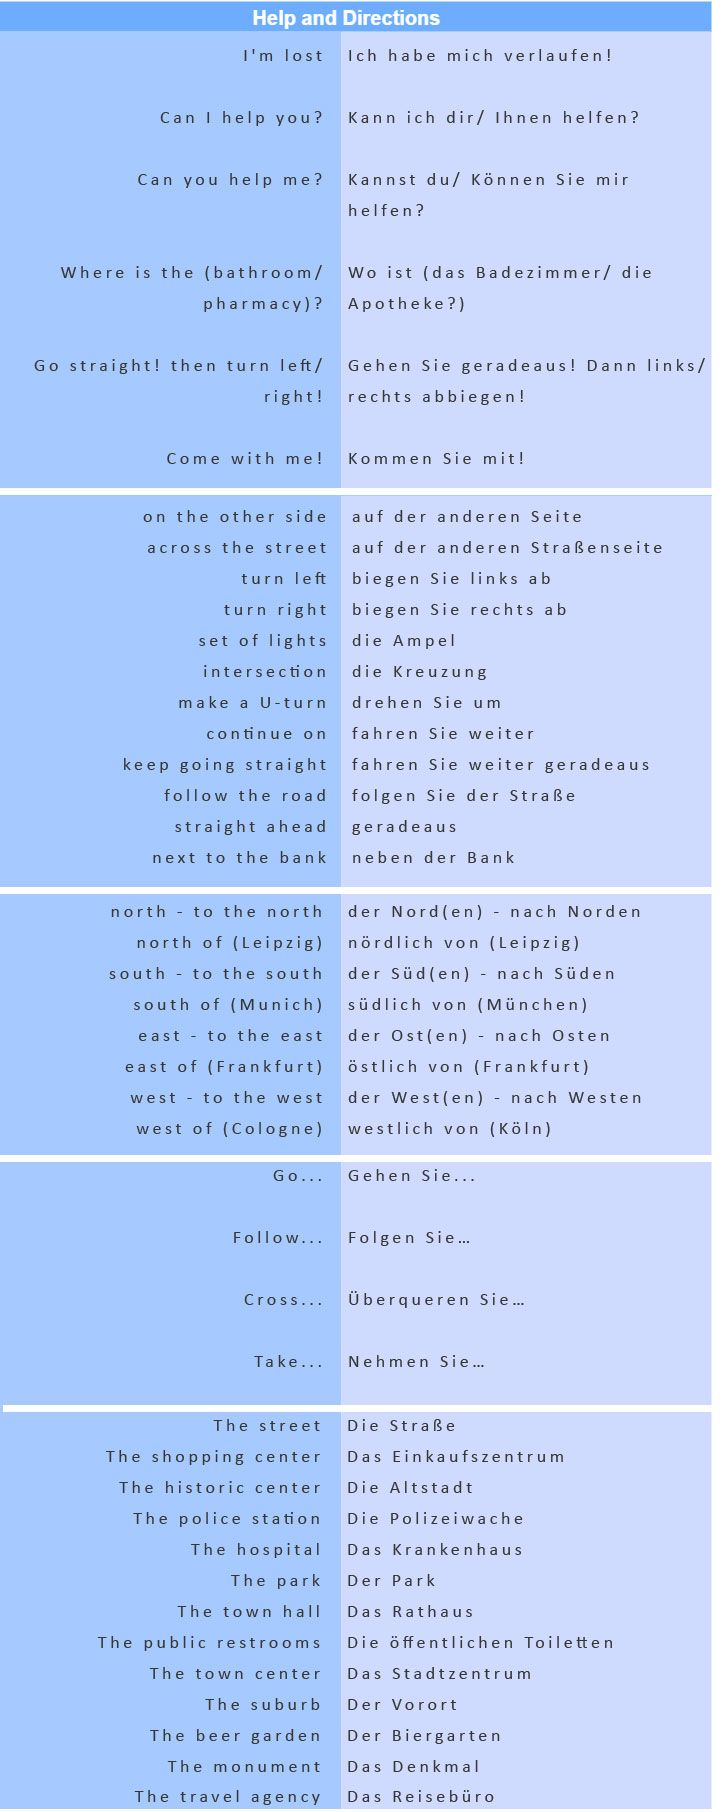 Most Common German Phrases - Help and Directions - learn German,vocabulary,communication,german